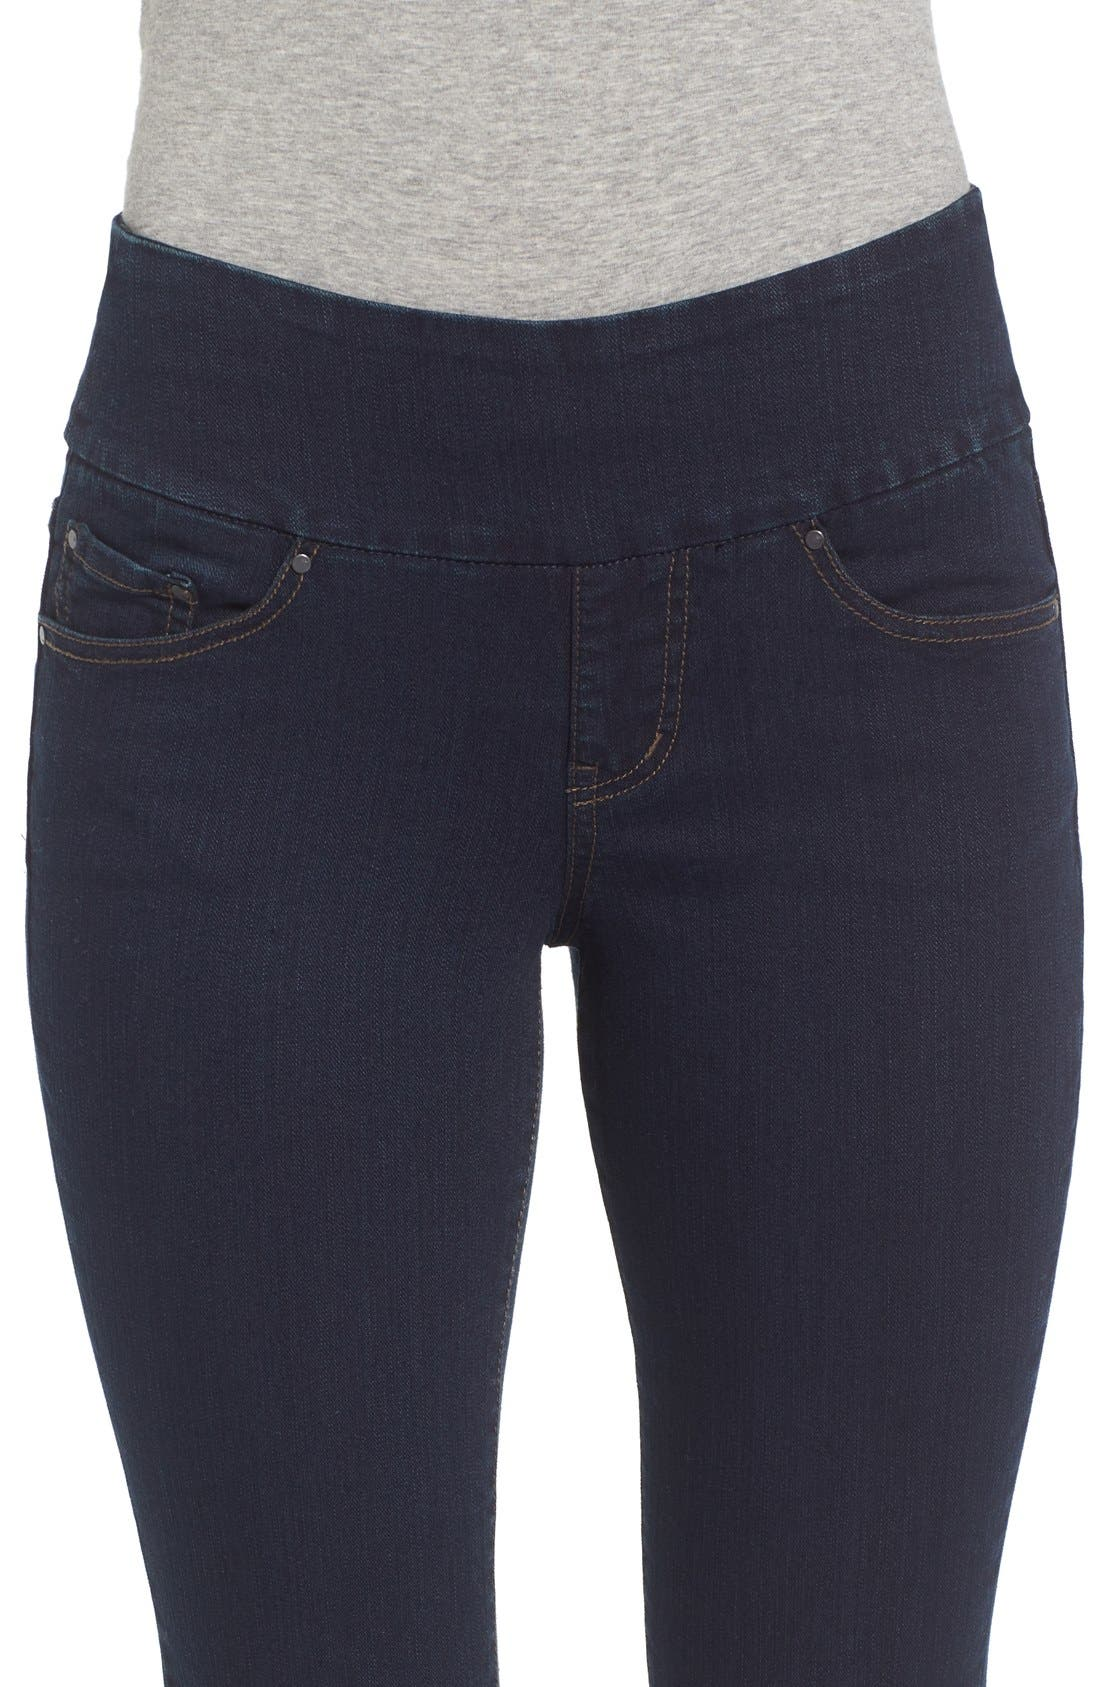 'Paley' Bootcut Jeans,                             Alternate thumbnail 4, color,                             After Midnight